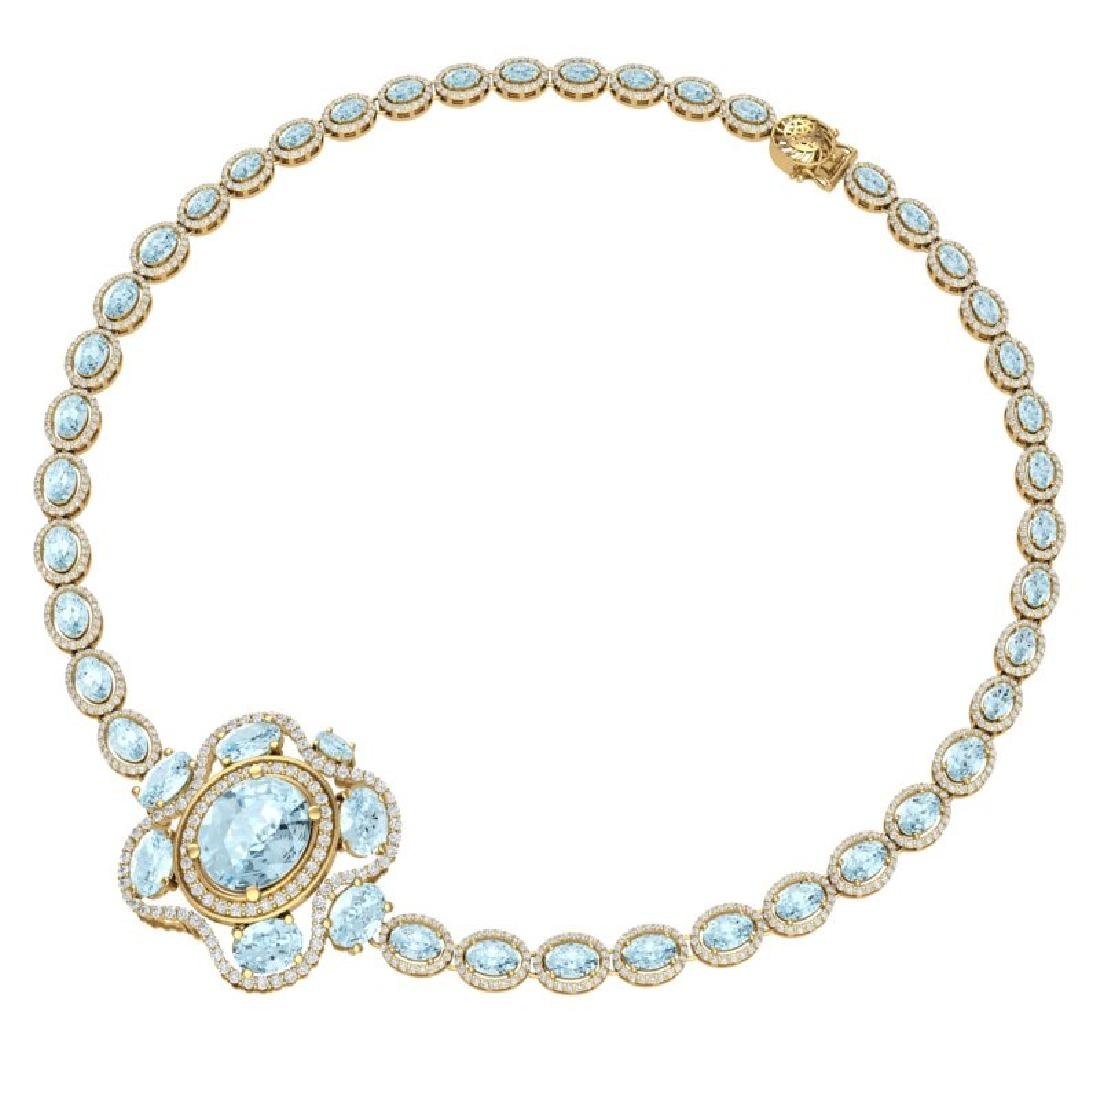 47.72 CTW Royalty Sky Topaz & VS Diamond Necklace 18K - 3